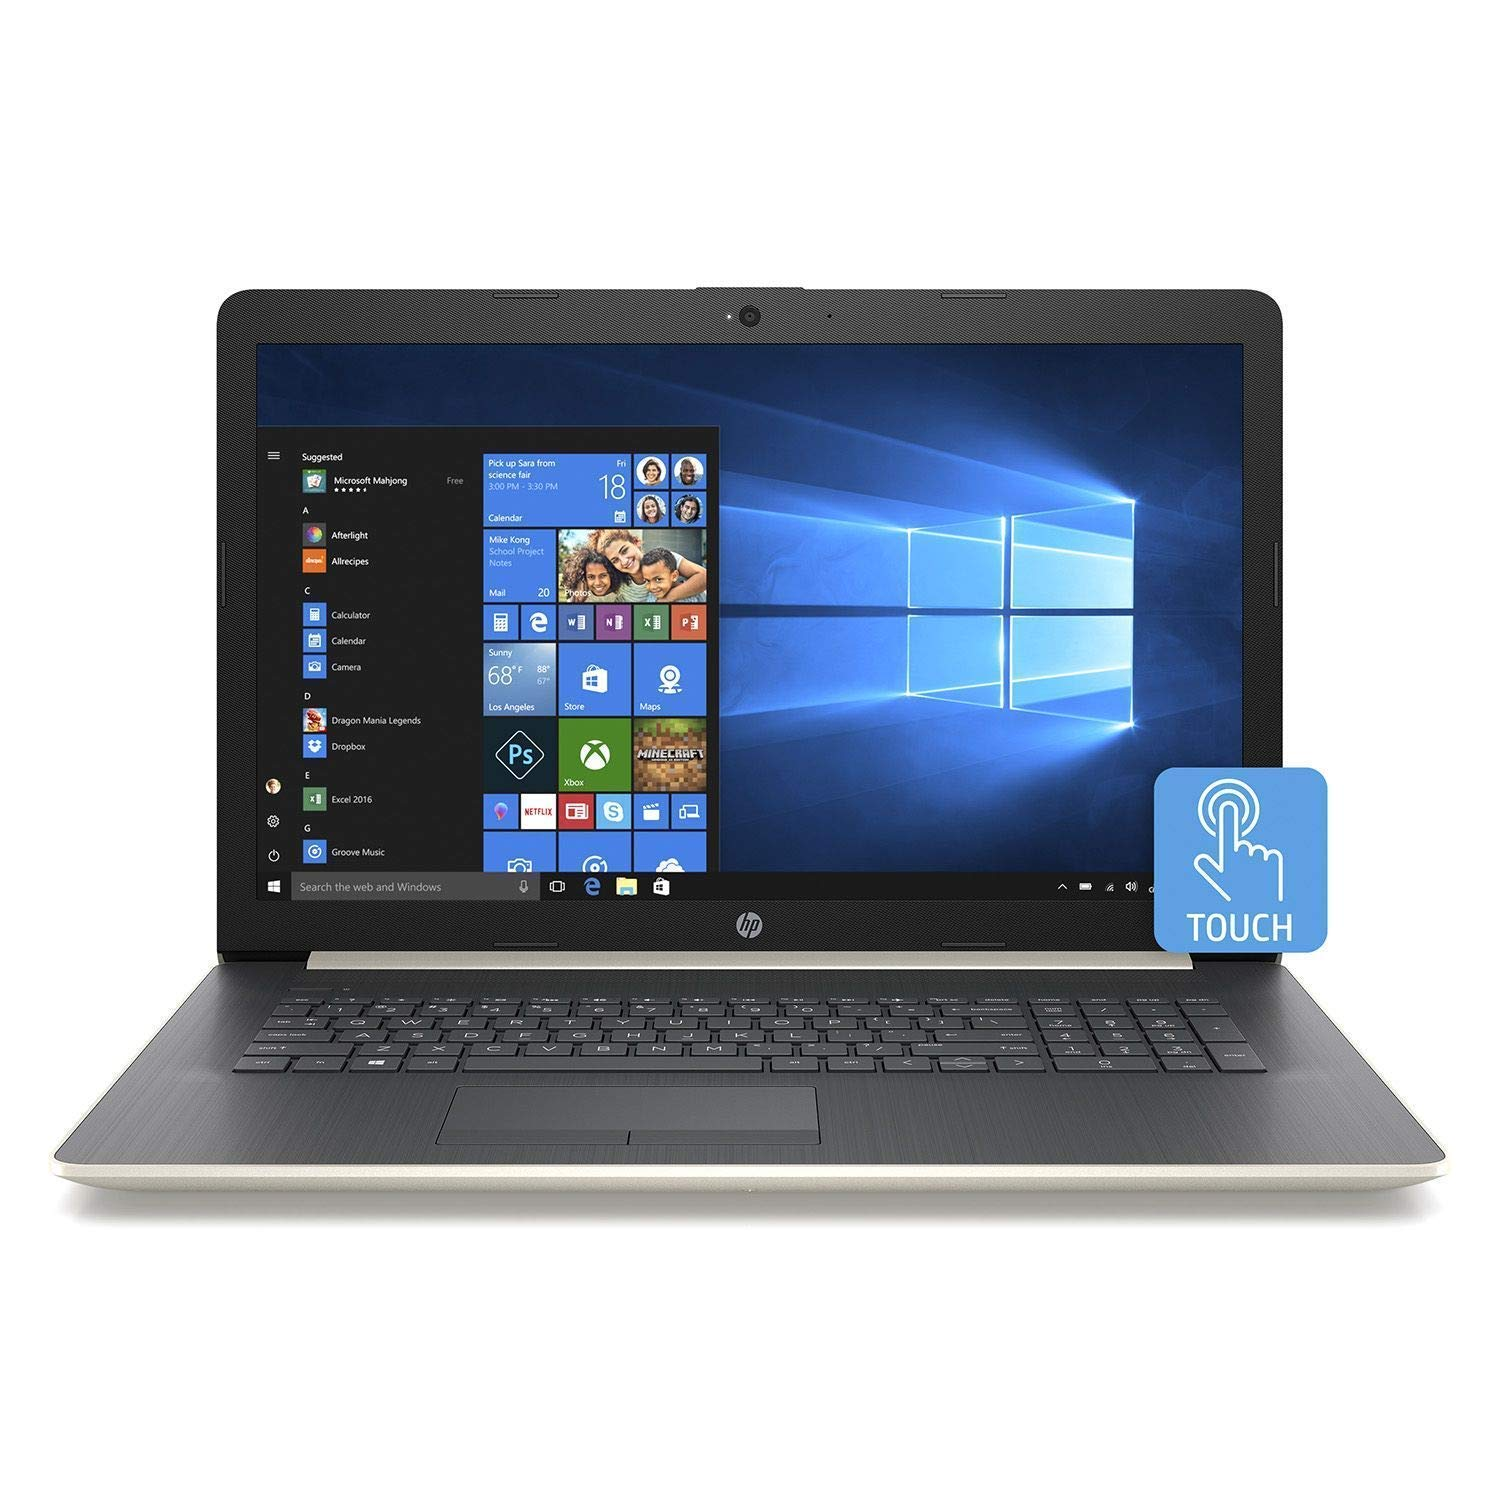 2019 HP 17.3 HD Touchscreen Premium Laptop Computer, AMD A9-9425 Up to 3.7GHz, 32GB DDR4 RAM, 2TB HDD, AMD Radeon R5, DVDRW, WiFi, Bluetooth 4.2, USB 3.1, HDMI, Pale Gold, Windows 10 Home